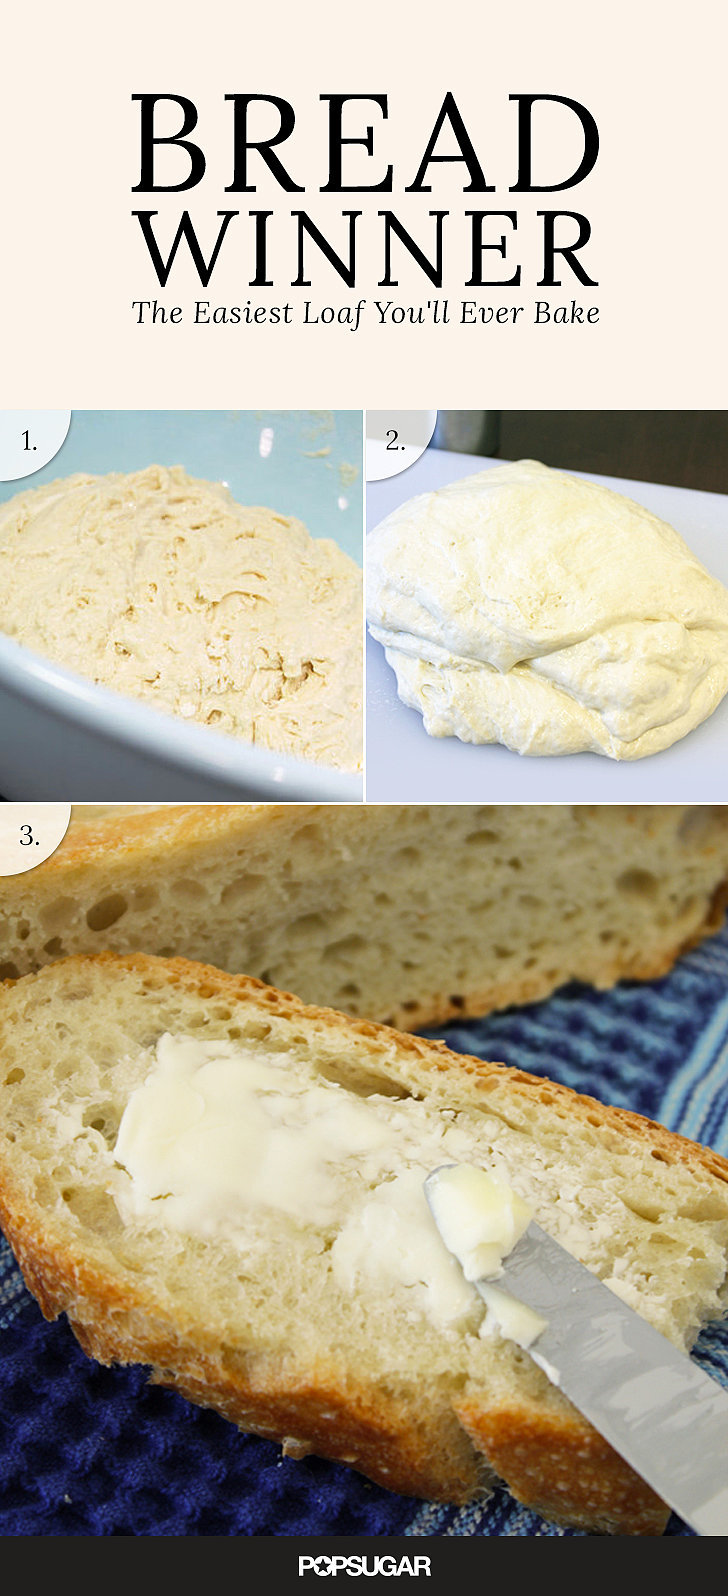 Mark Bittman's 3-Ingredient No-Knead Bread Actually Works